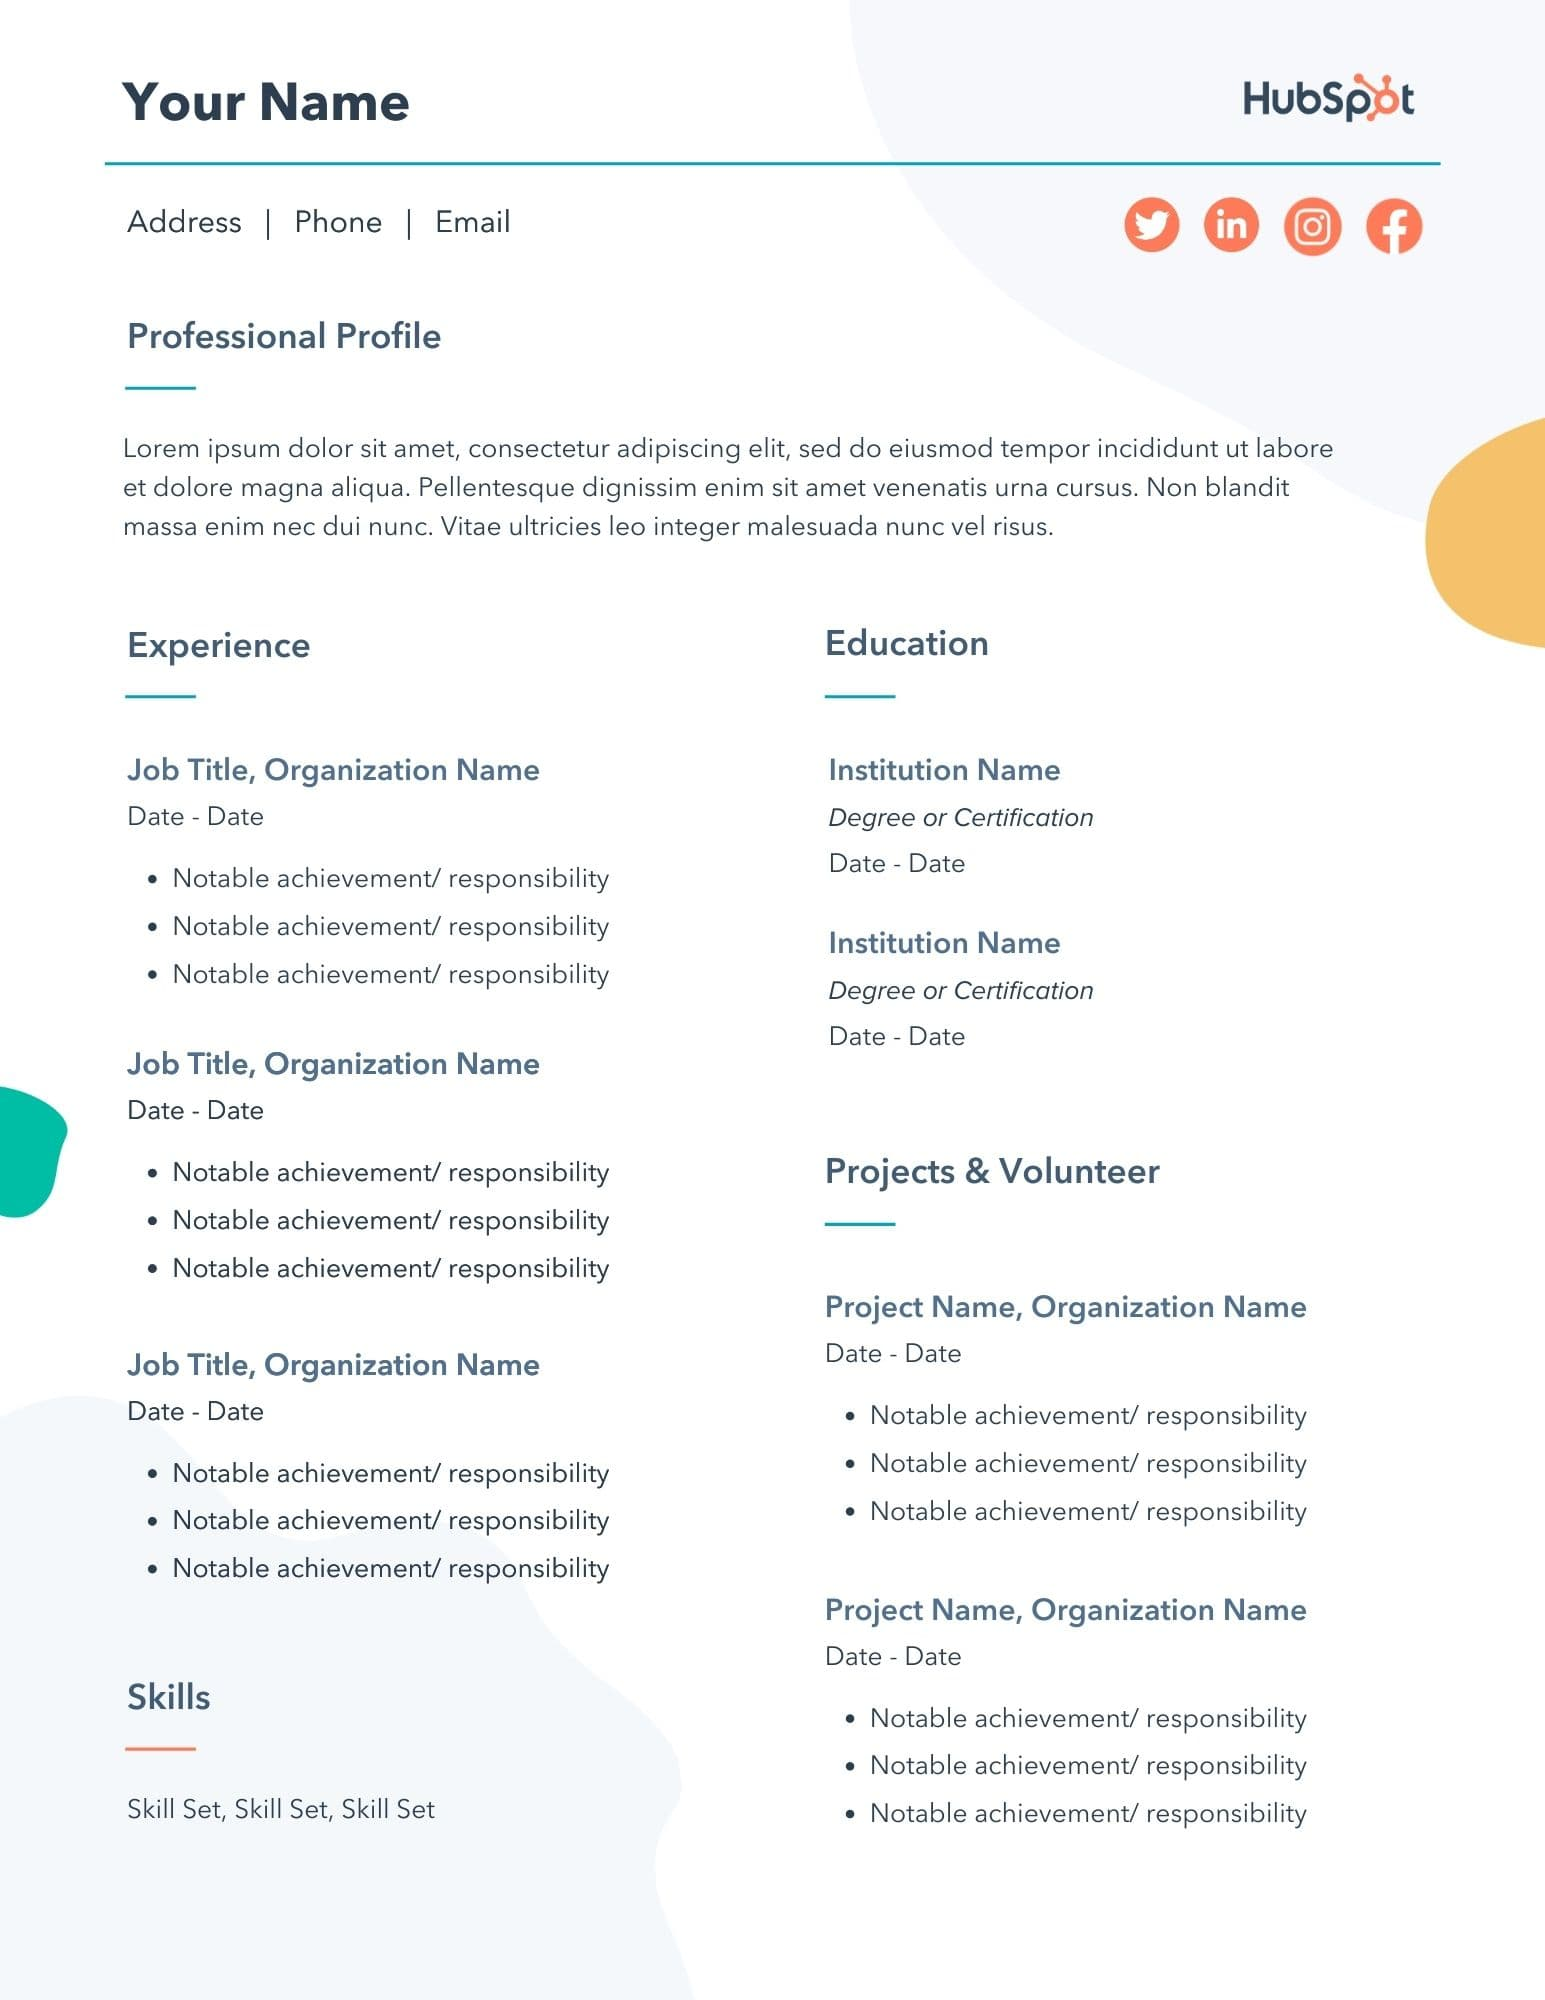 free resume templates for microsoft word to make your own one template funny skills time Resume Microsoft Word One Page Resume Template